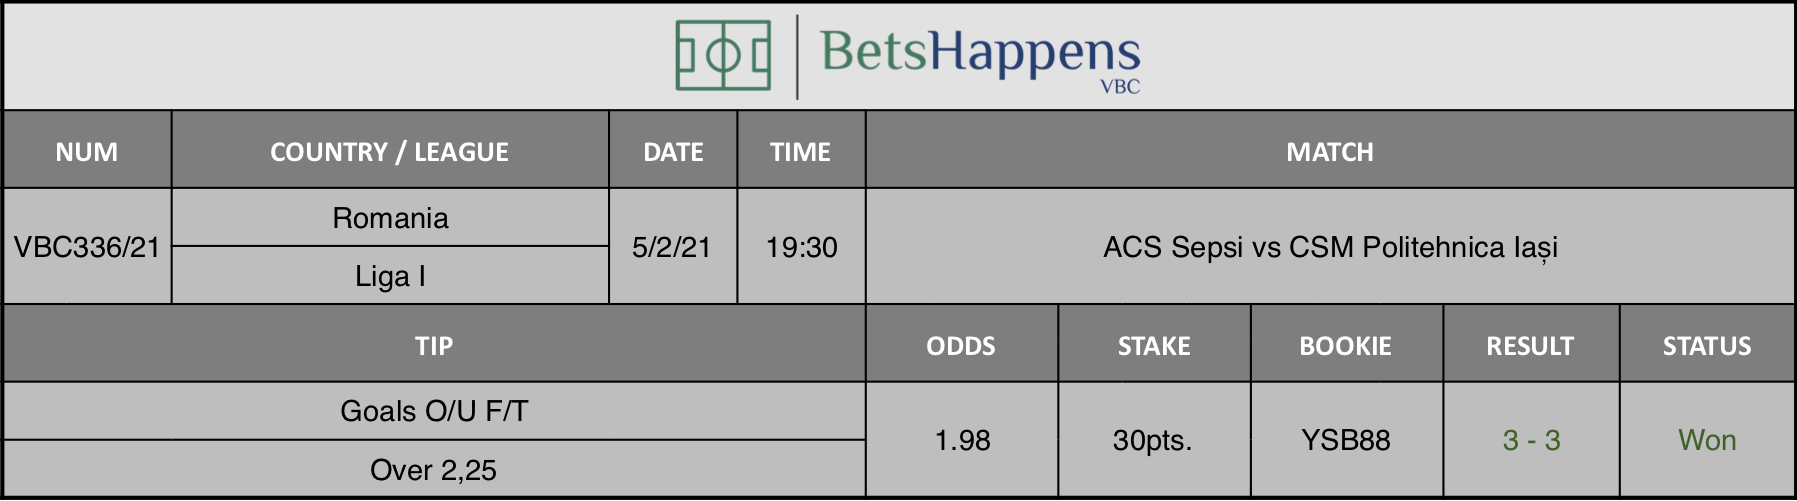 Results of our tip for the ACS Sepsi vs CSM Politehnica Iași match where Goals O/U F/T Over 2,25 is recommended.